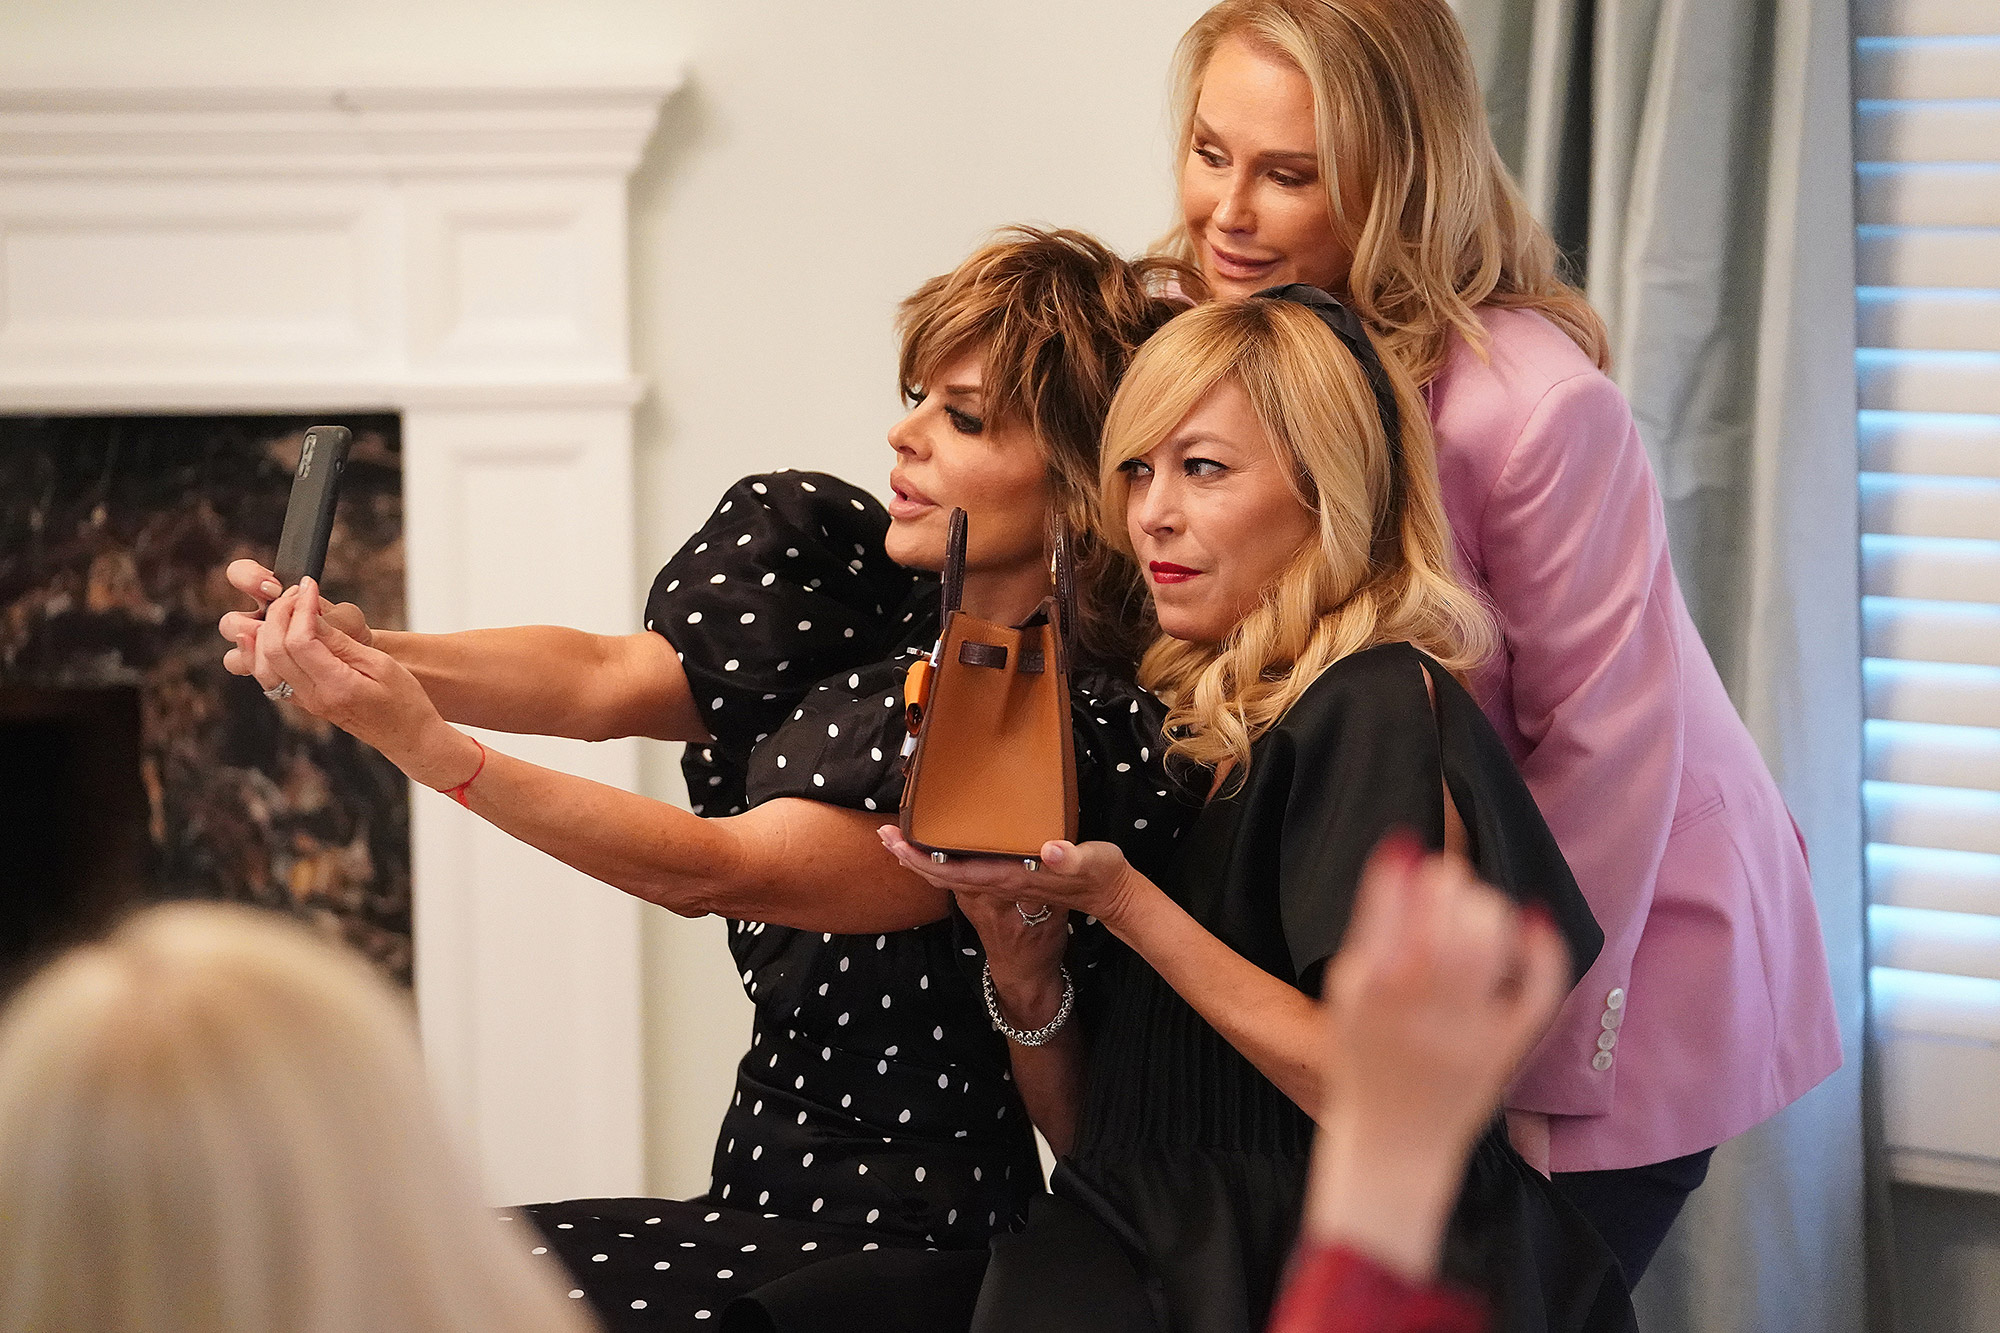 """THE REAL HOUSEWIVES OF BEVERLY HILLS -- """"The Divided States of Erika"""" Episode 1105 -- Pictured: (l-r) Lisa Rinna, Kathy Hilton, Sutton Stracke --"""